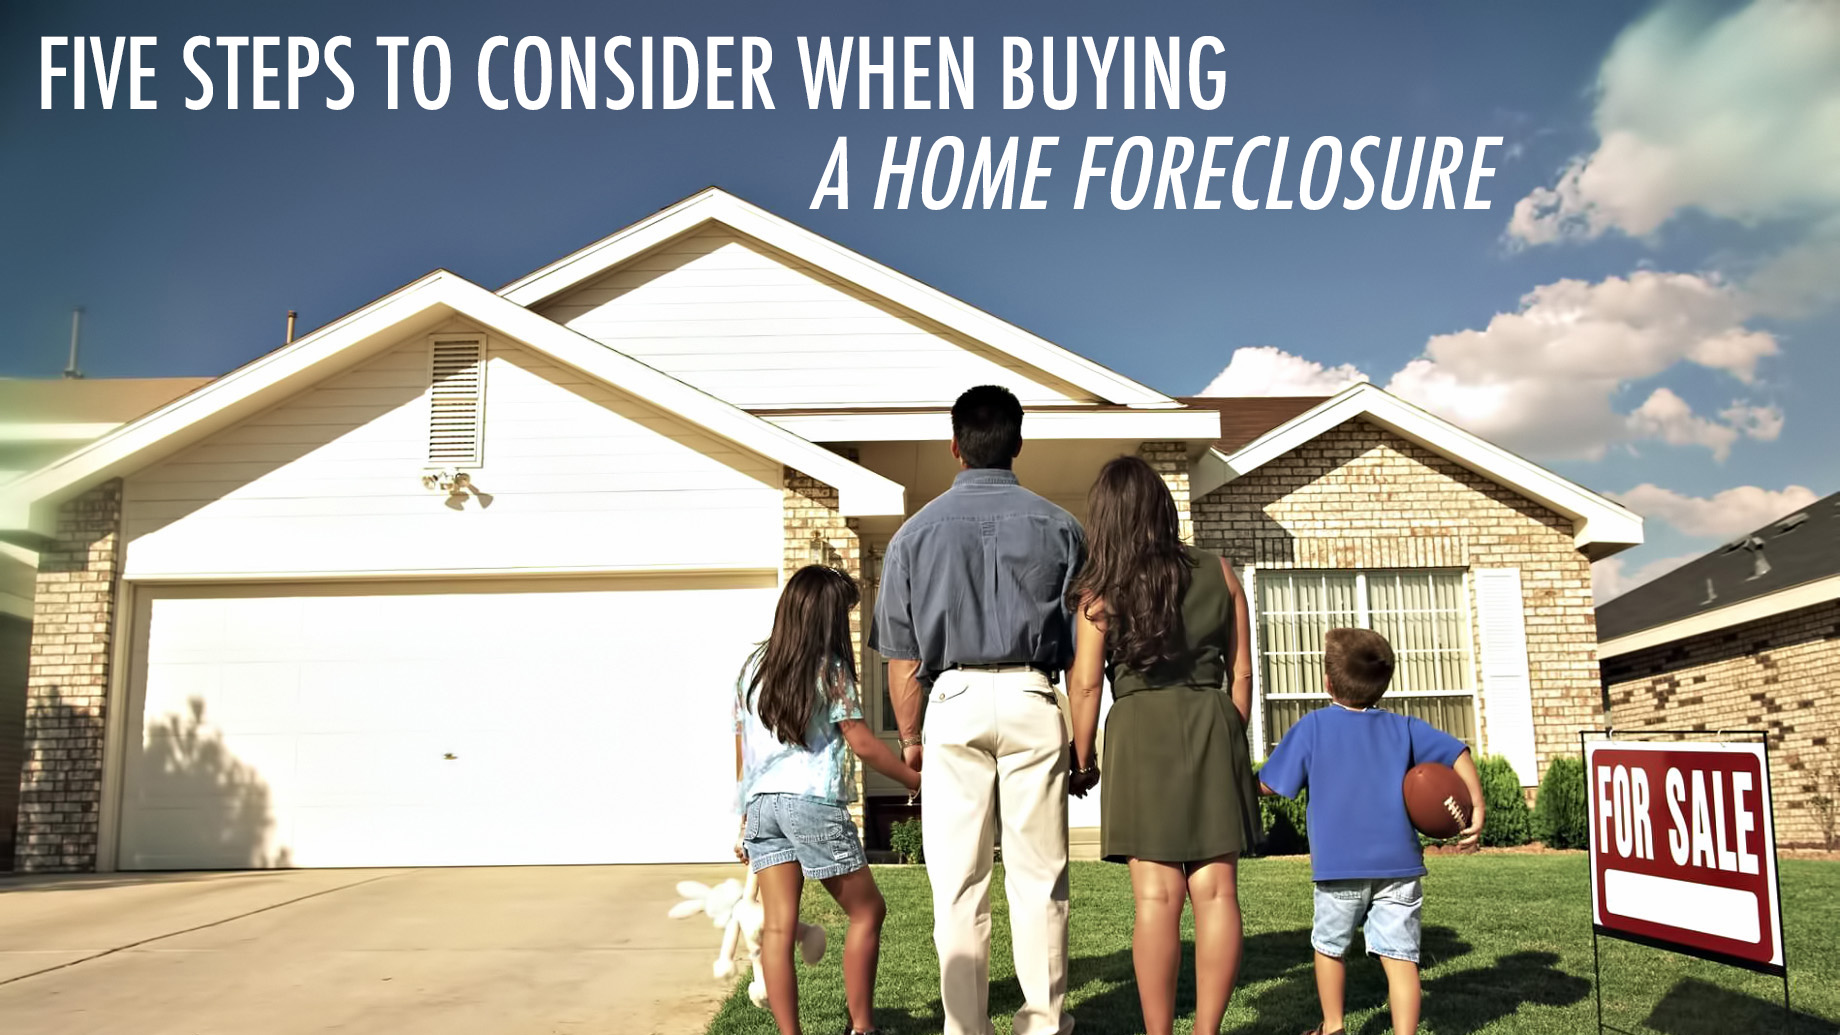 Five Steps to Consider When Buying a Home Foreclosure